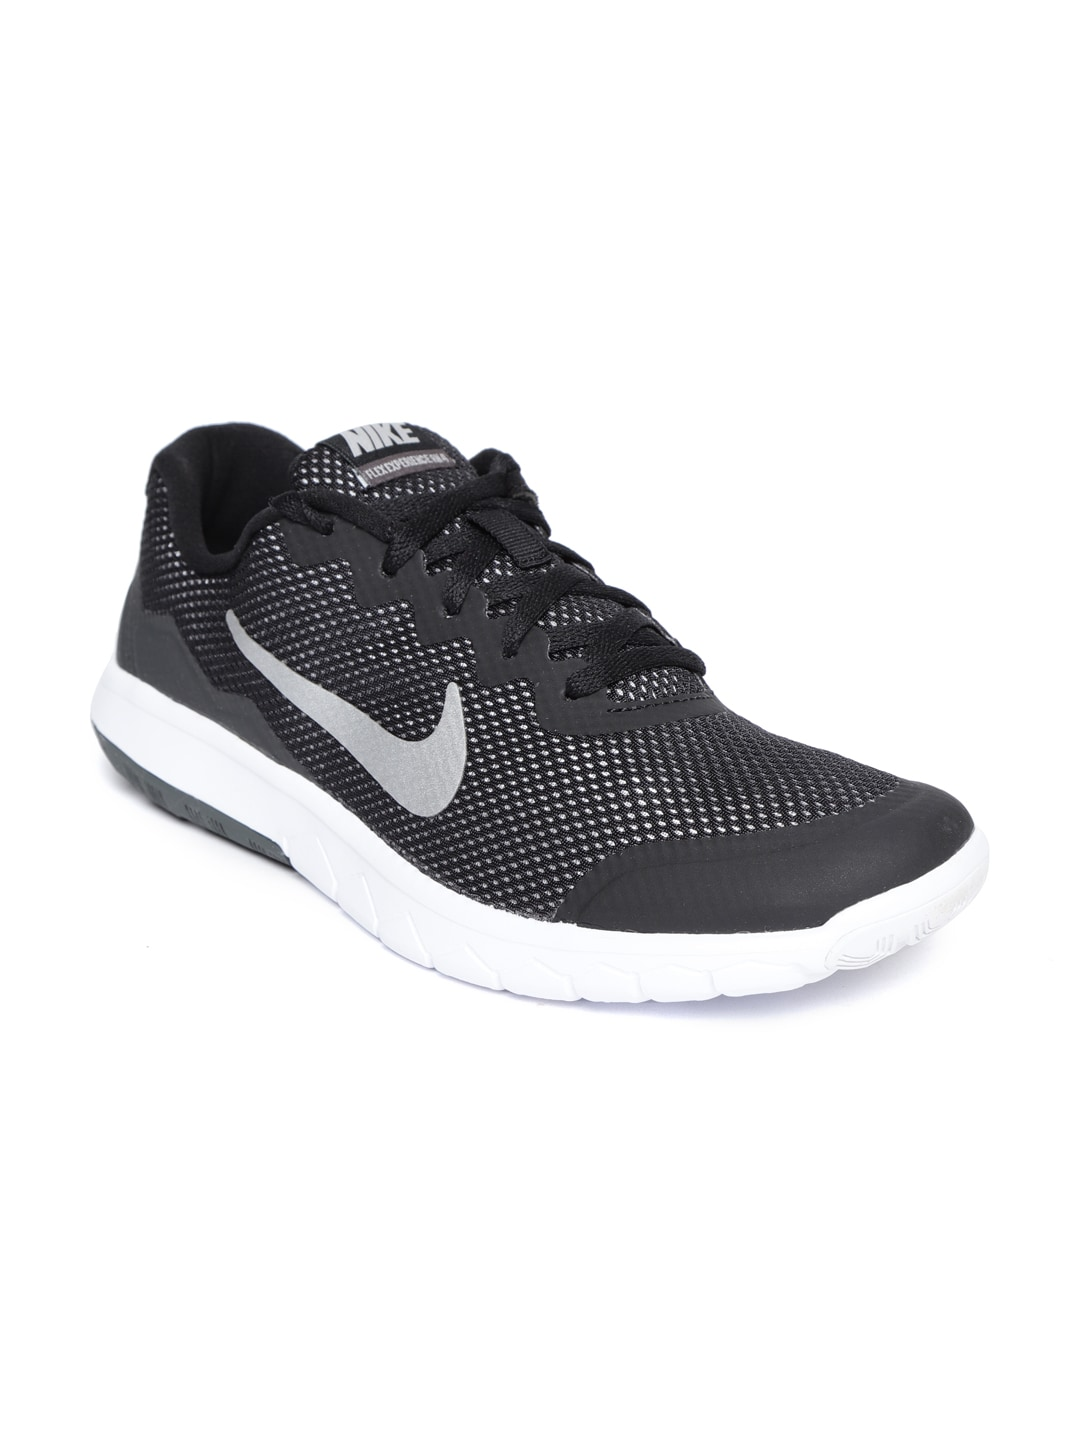 new style a0b0f 79d0f Nike Boys Black Flex Experience 4 Running Shoes